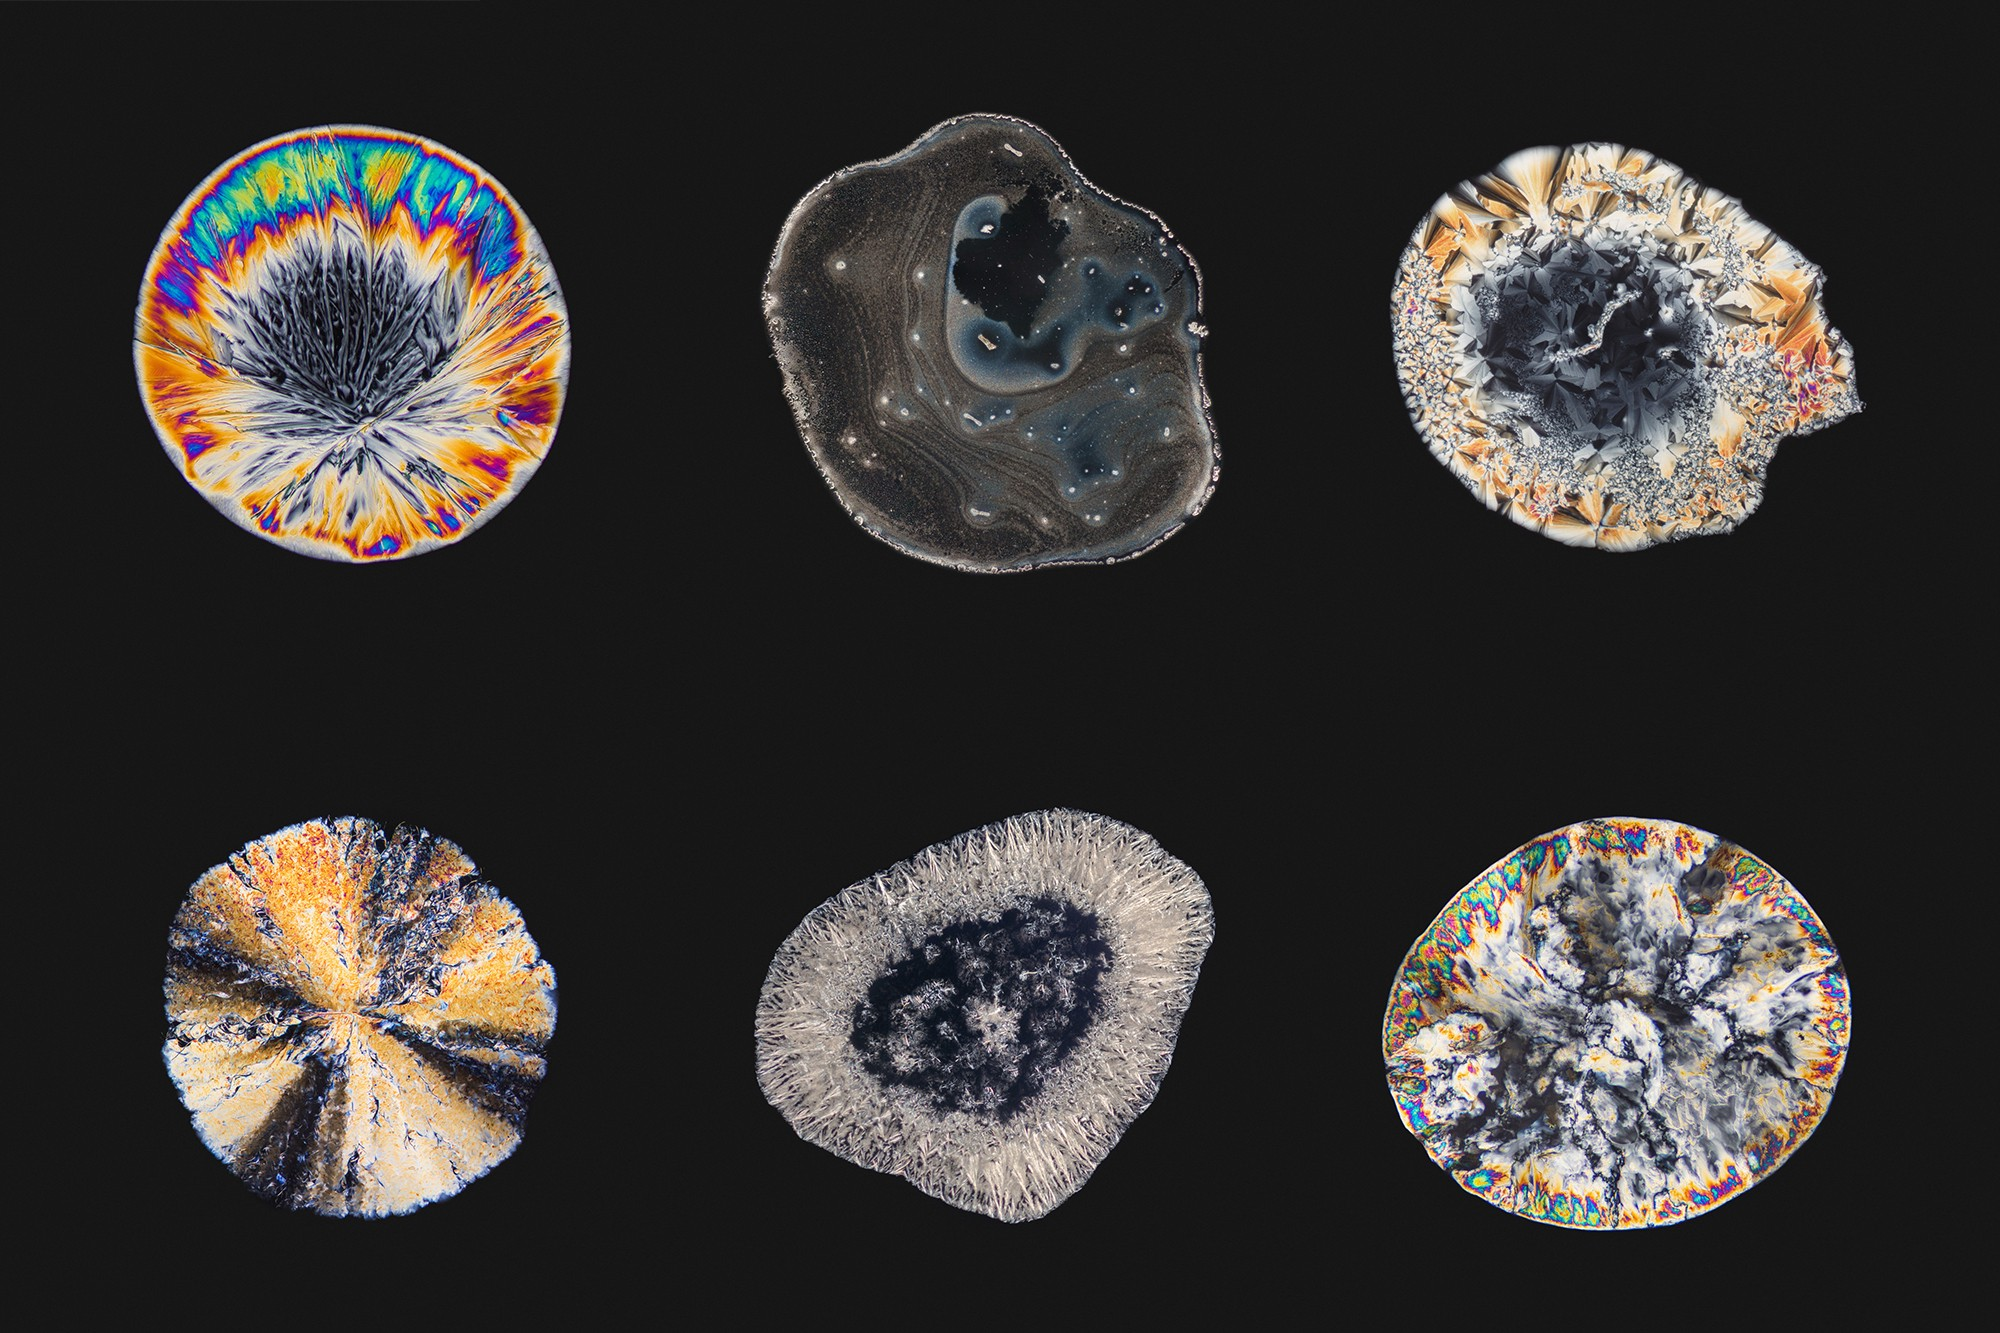 How Micrography sparked my interest in the evolving online